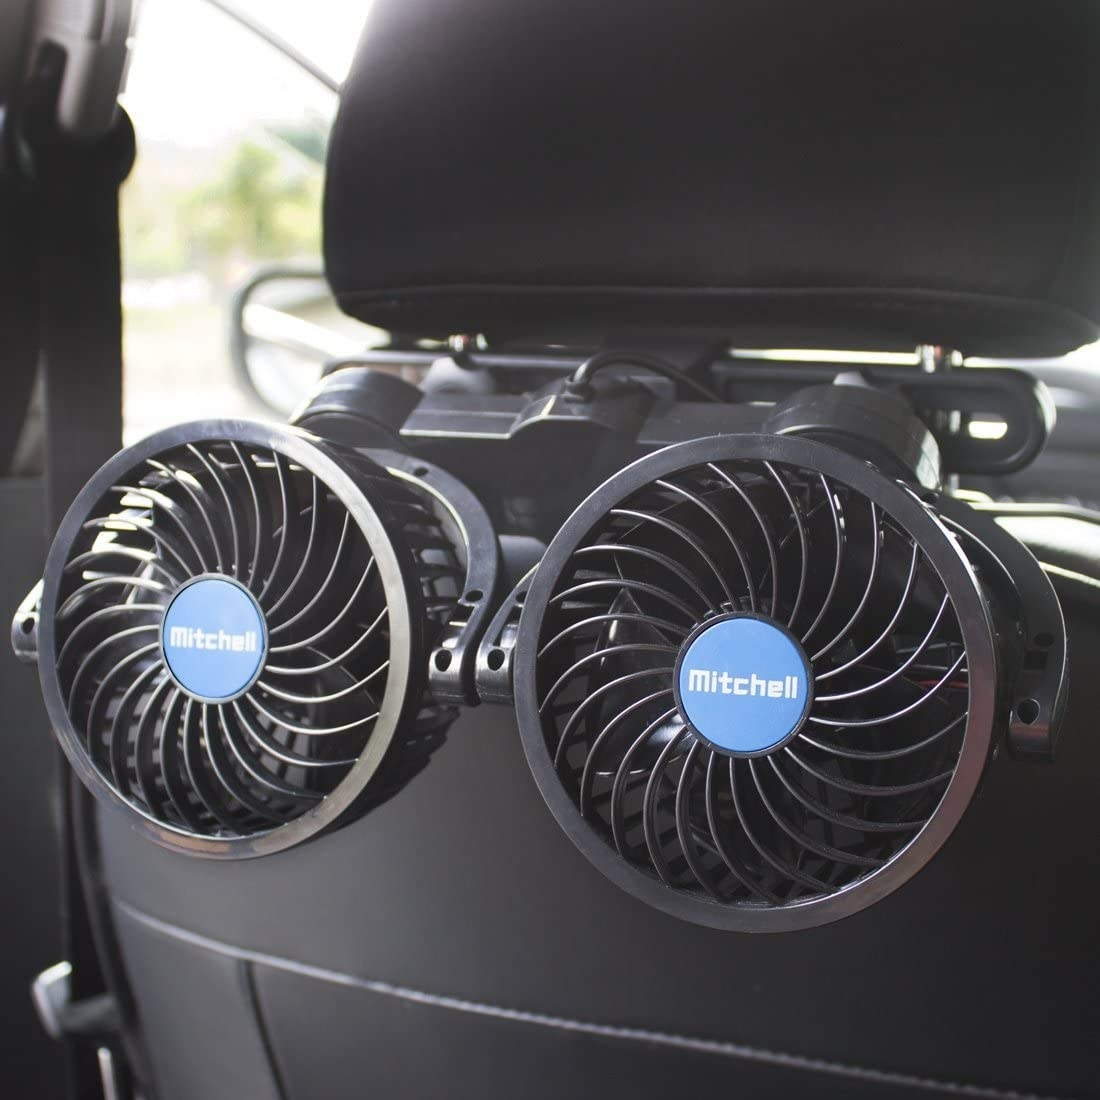 The dual fans, which wrap around the back of the headrest.